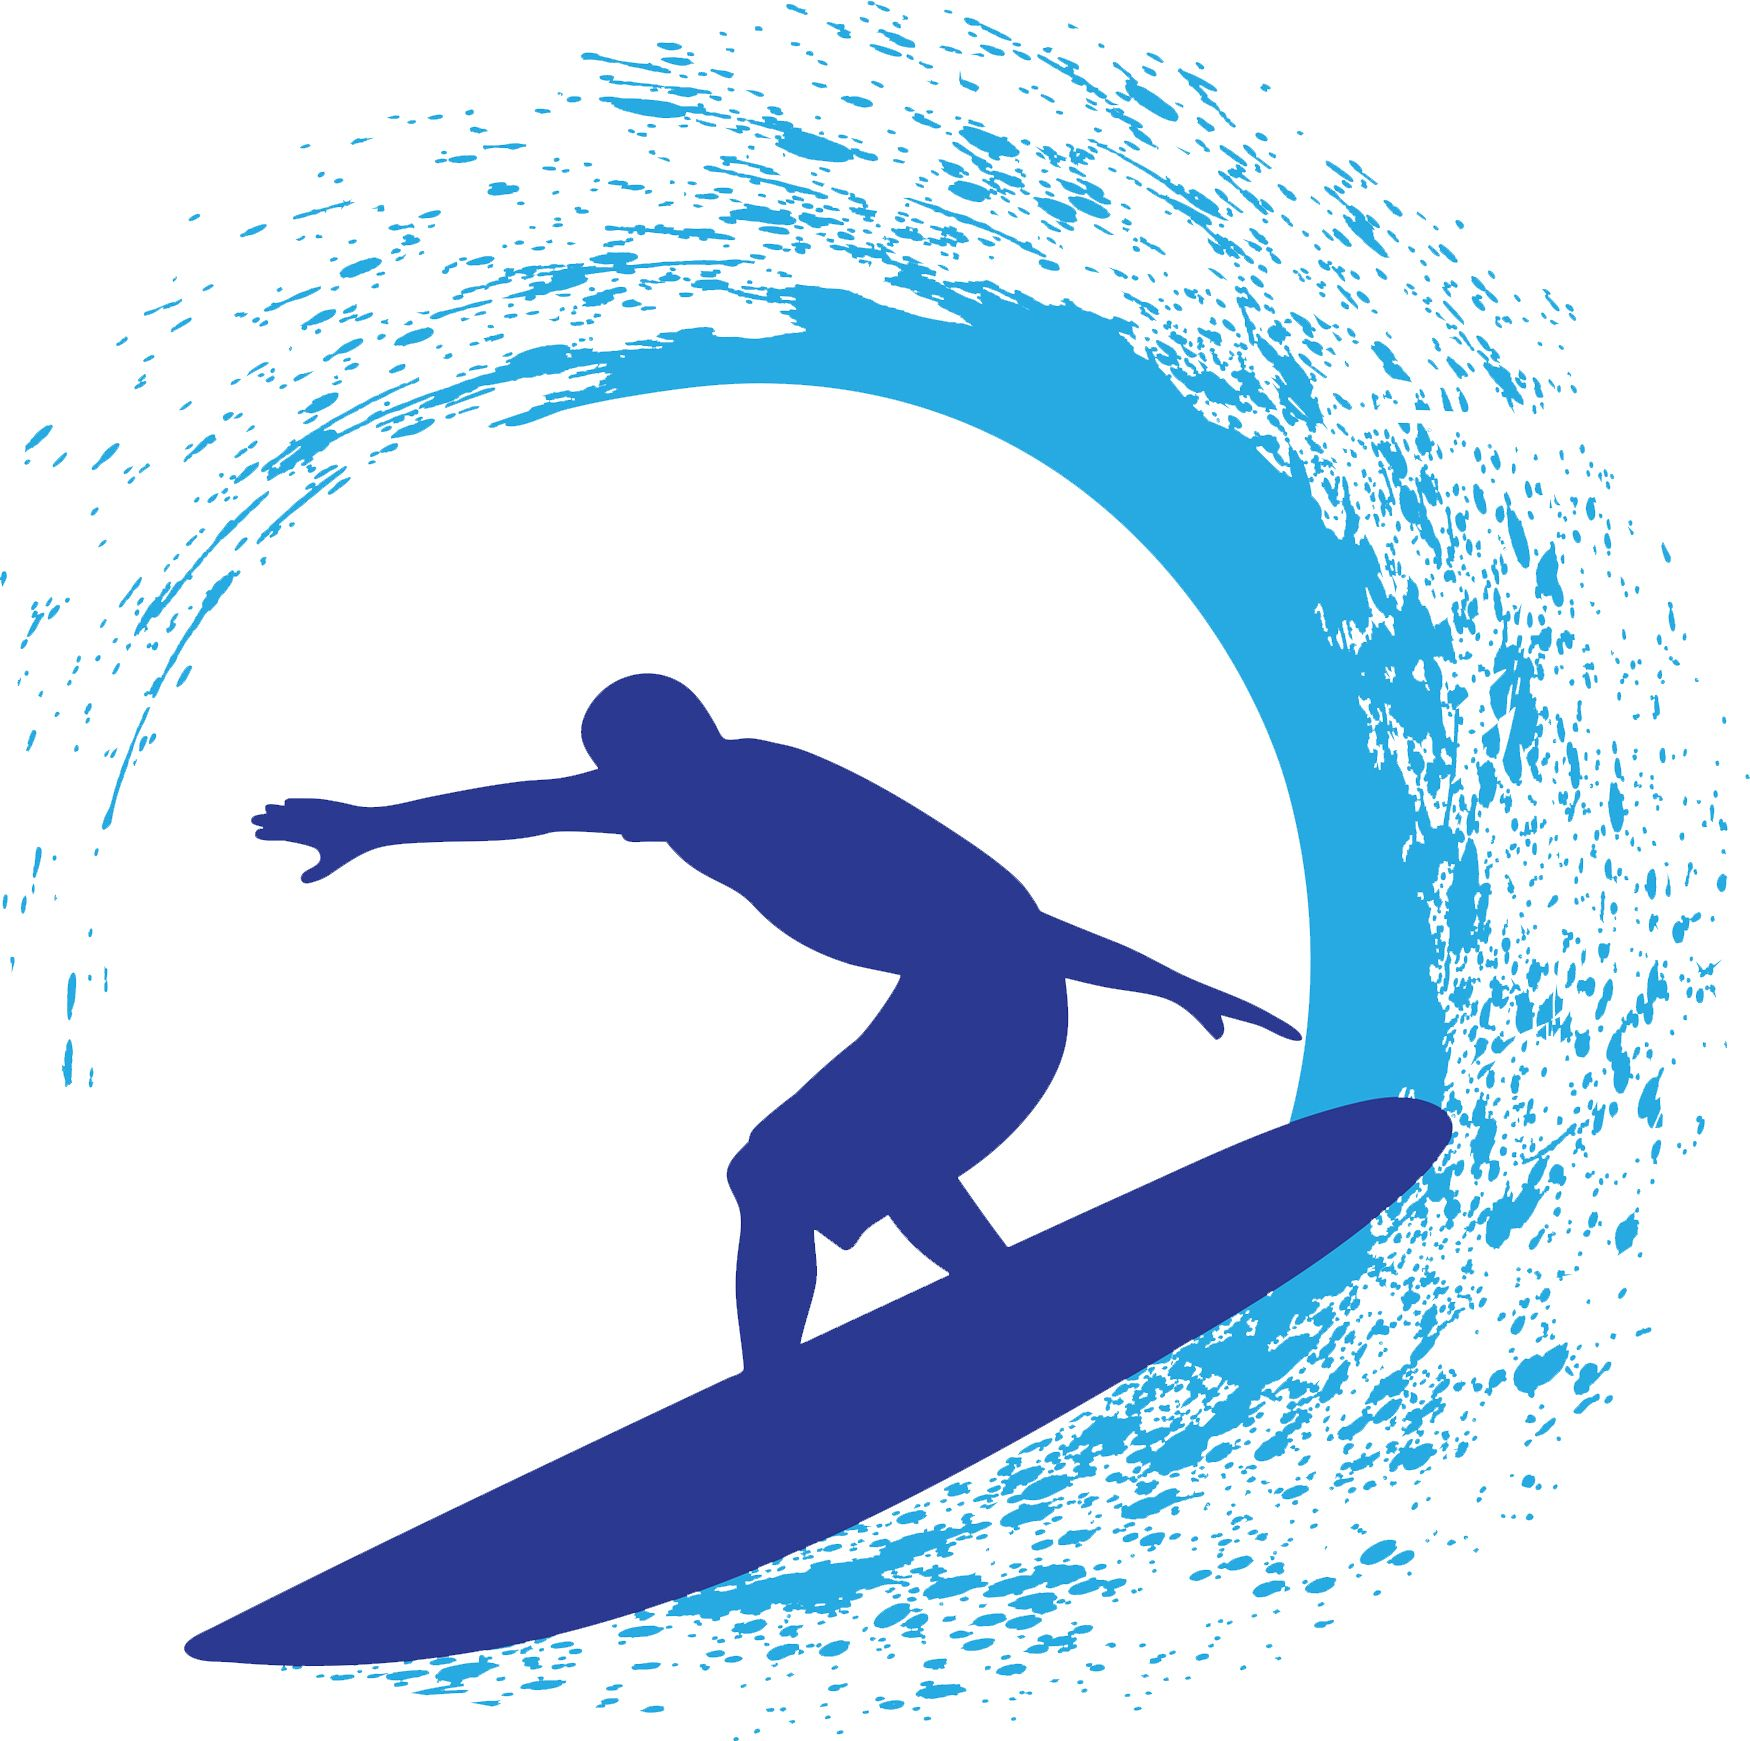 Surfer clipart images transparent Create surfer designs using the clip art from the Decorating and ... transparent